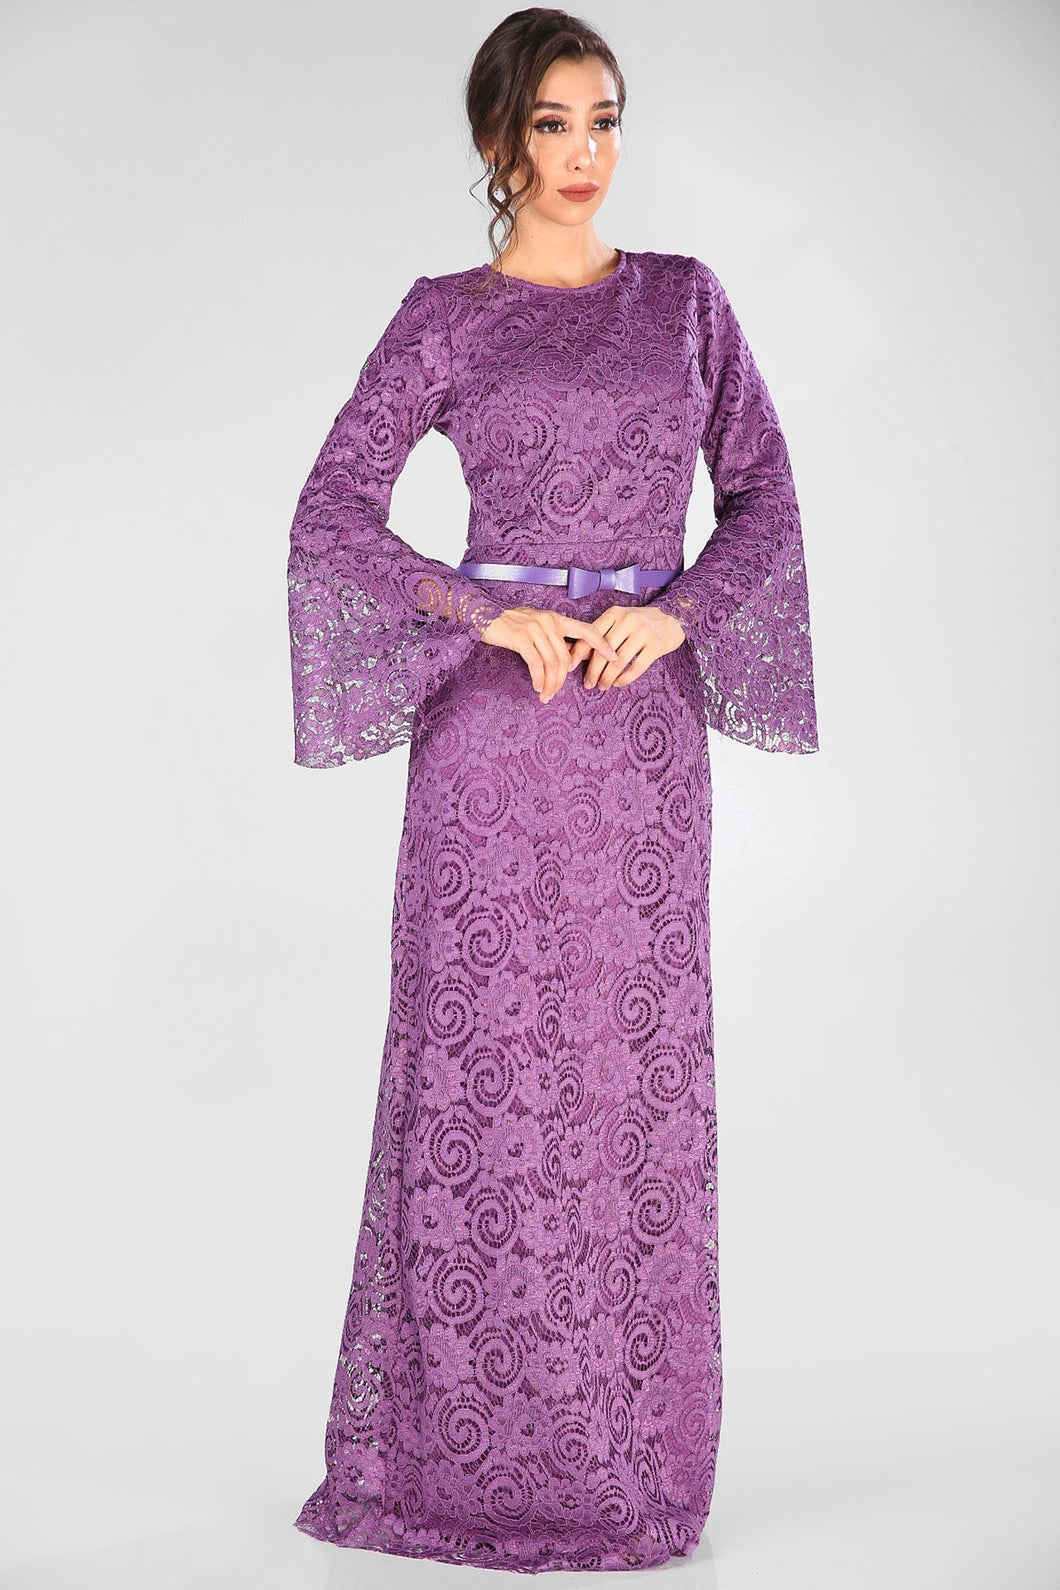 Belted Purple Lace Evening Dress